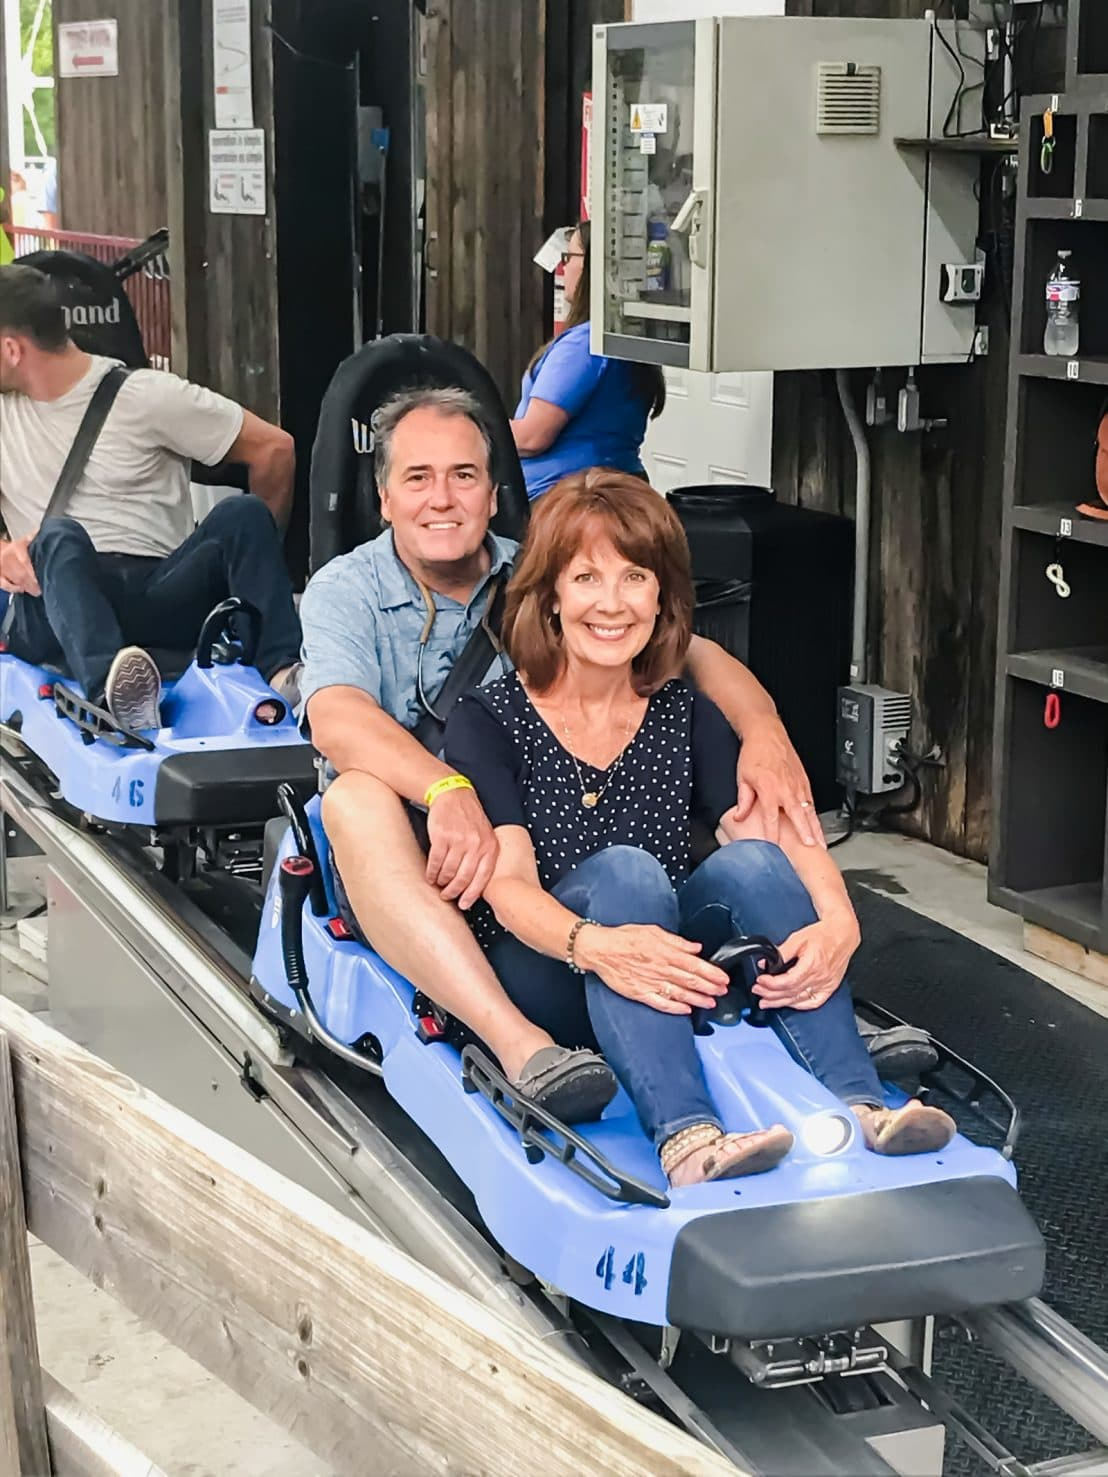 A man and woman in a blue kart on the Smoky Mountain Alpine Coaster.